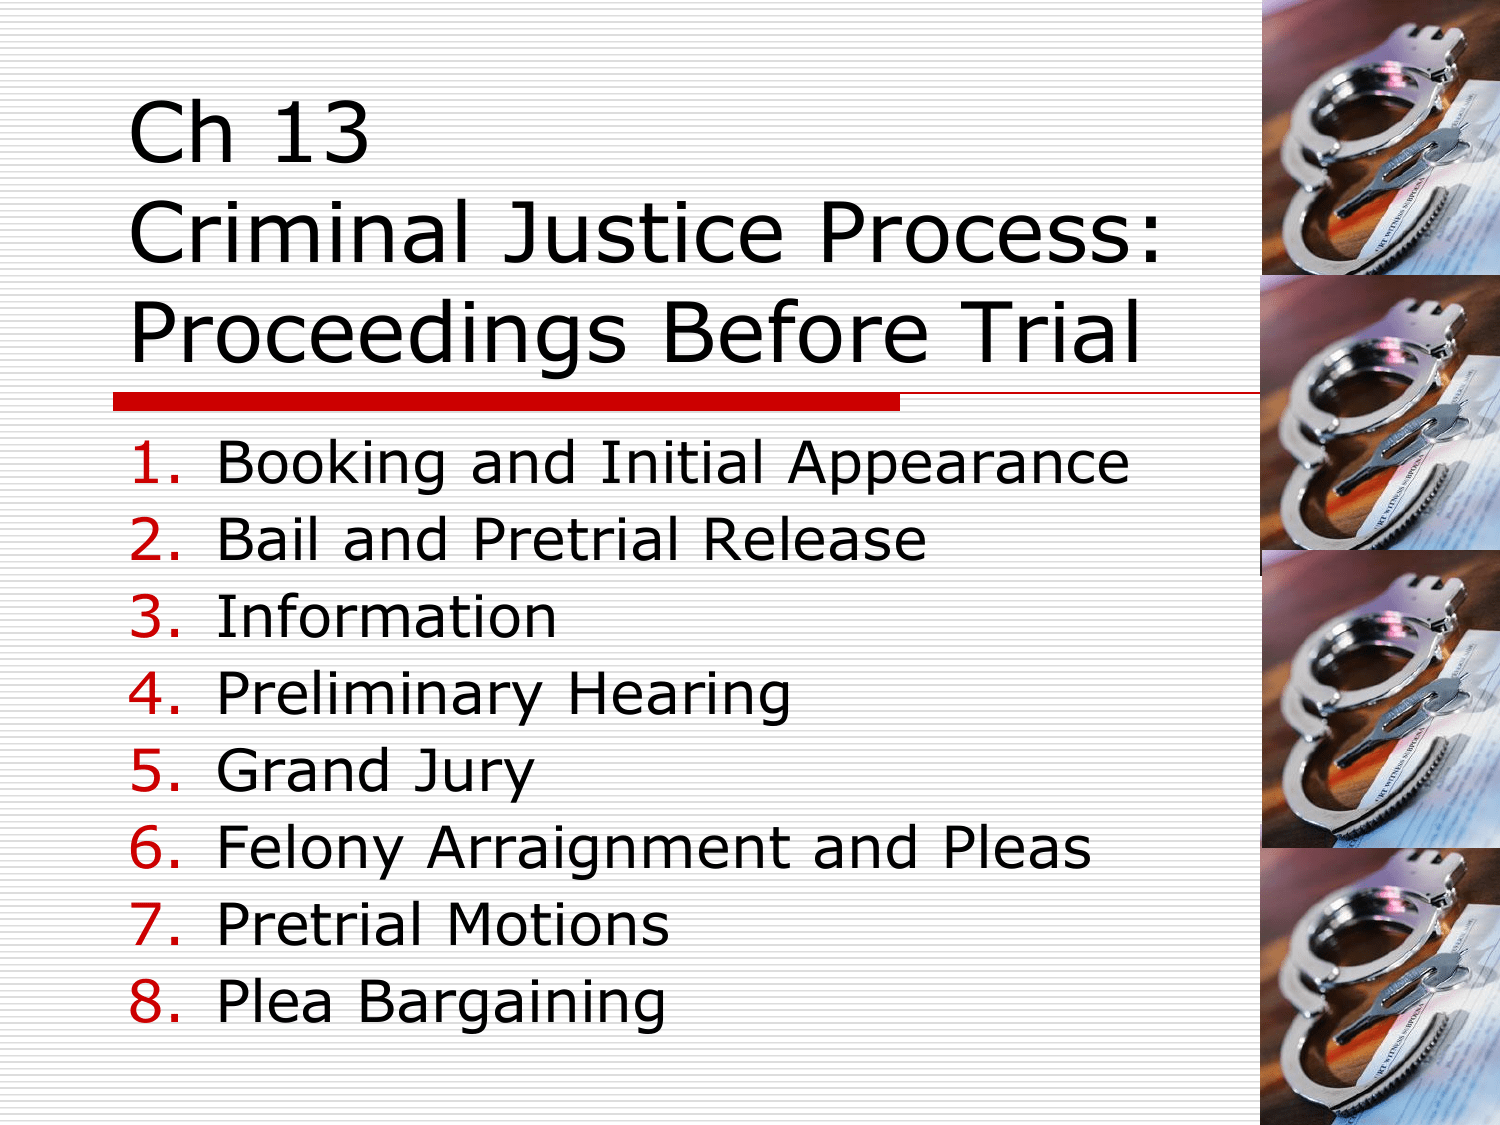 Criminal Justice Process Proceedings Before Trial